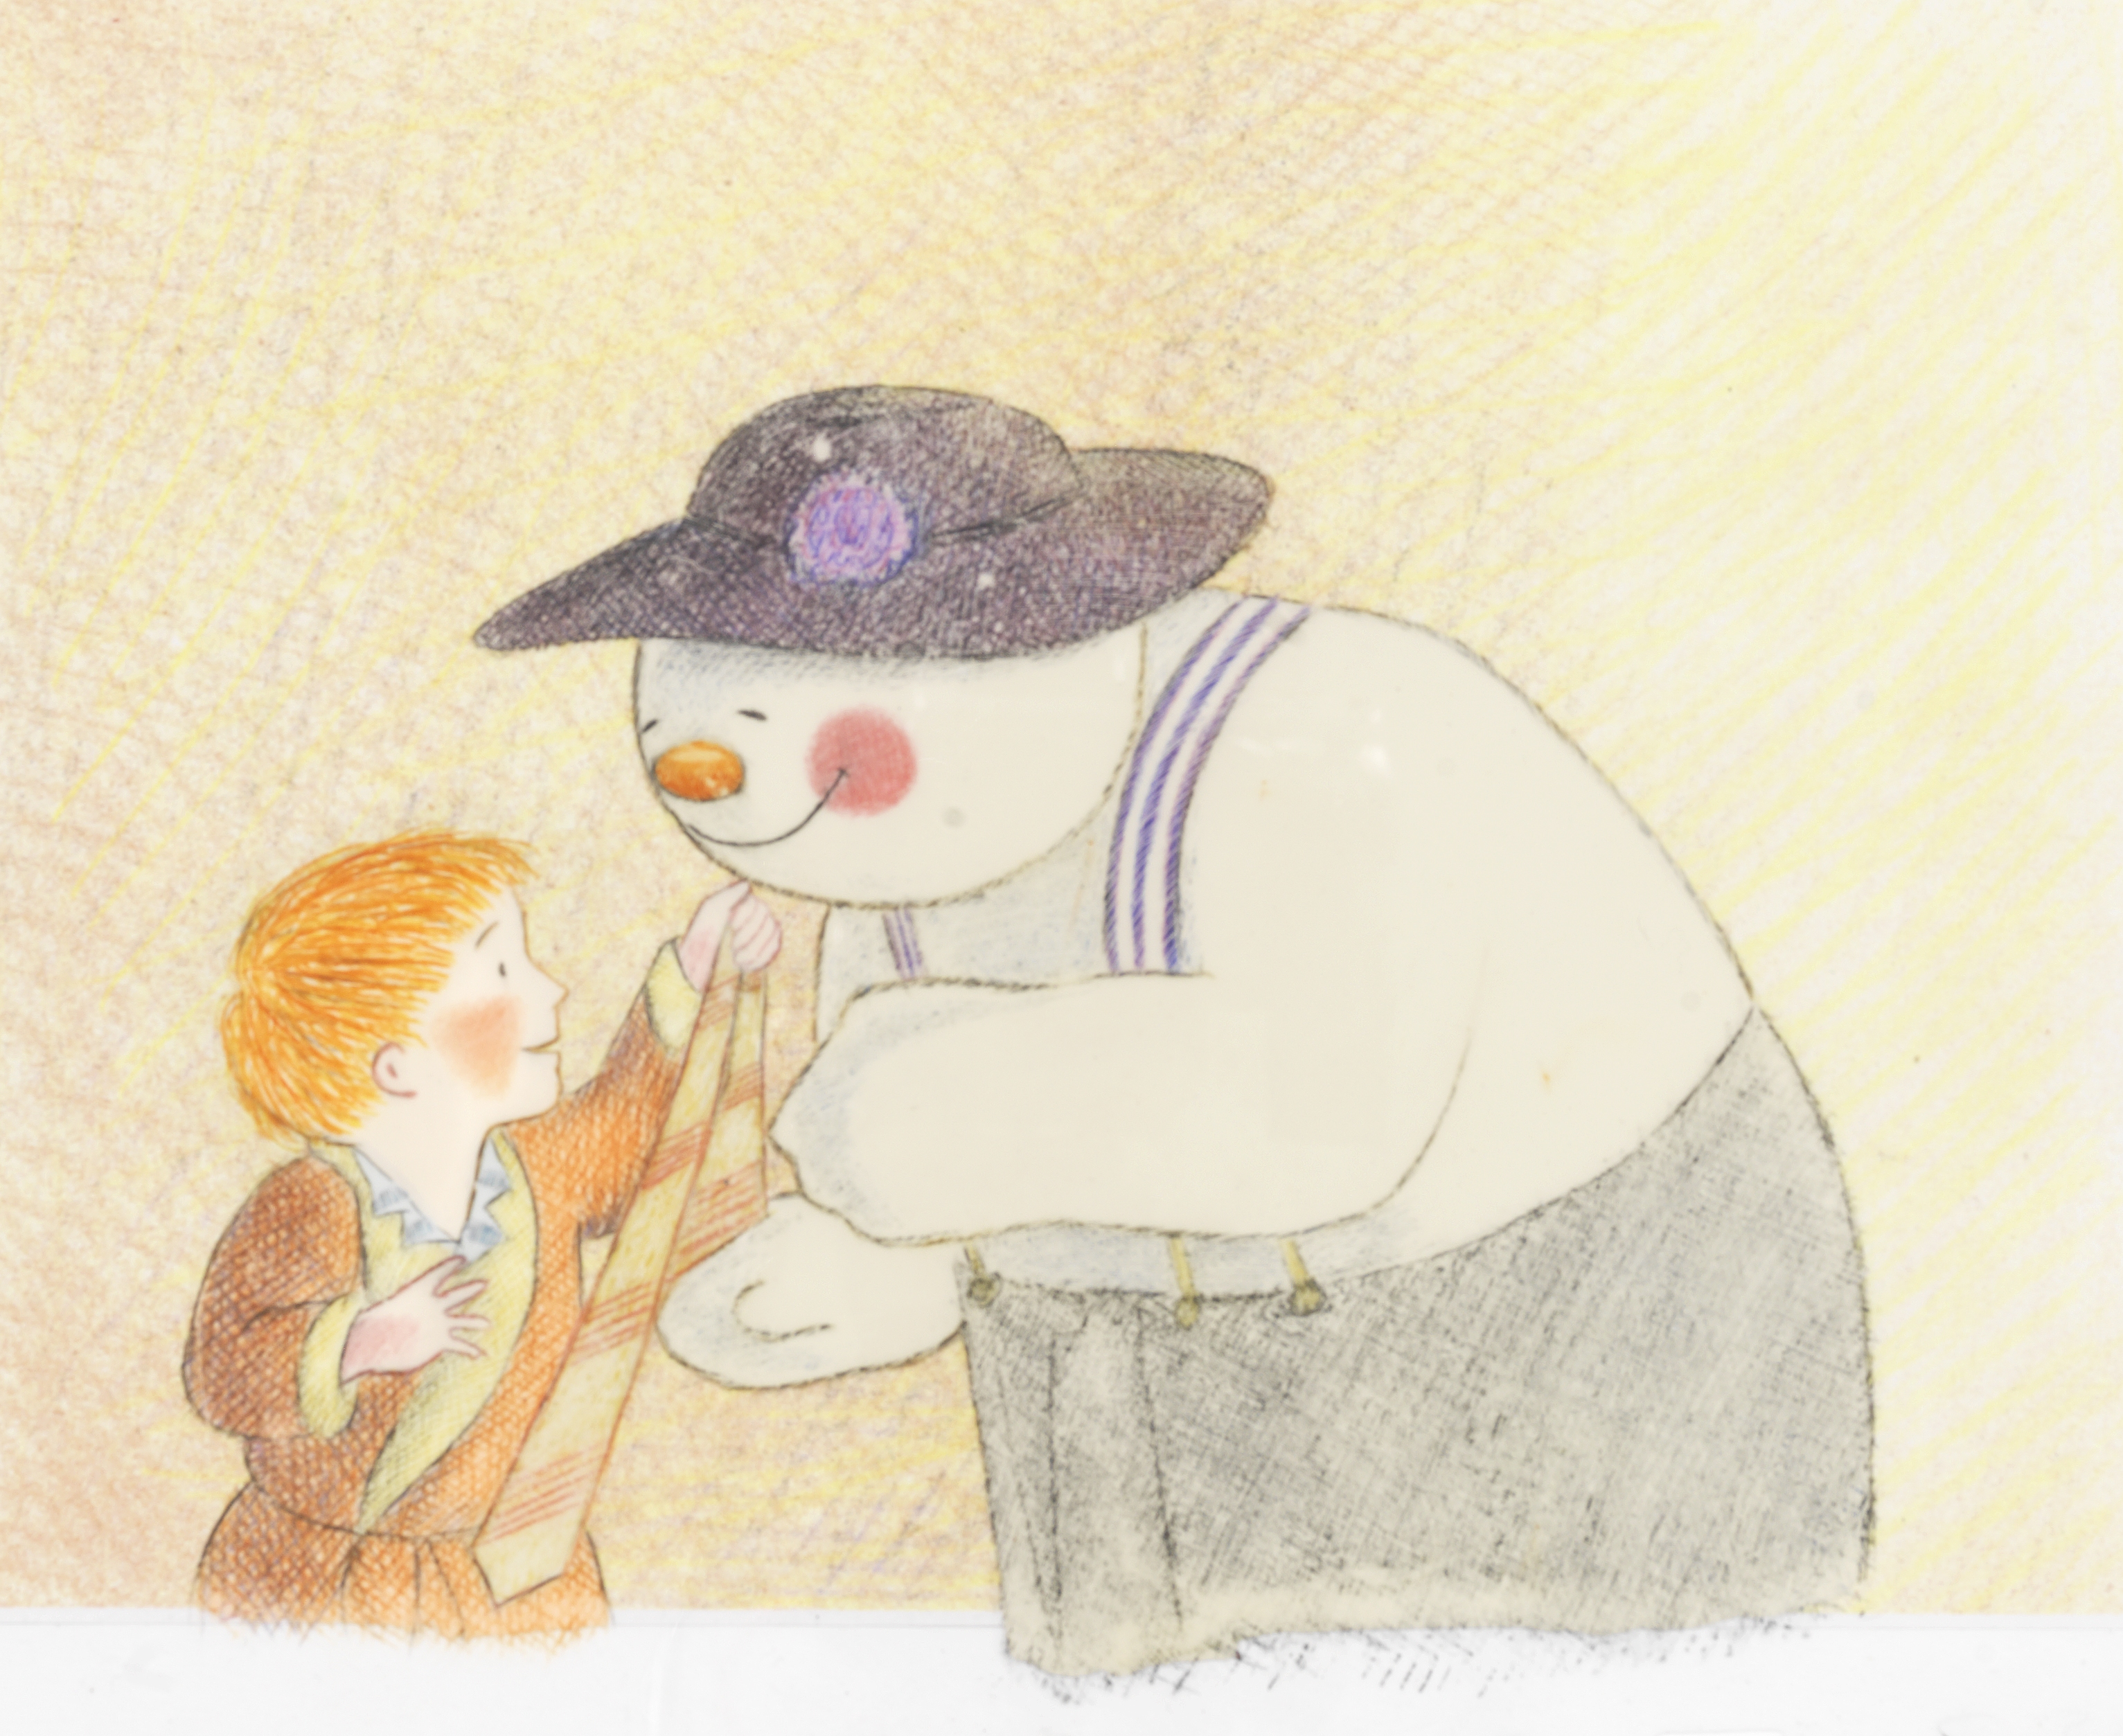 Lot 39 - The Snowman: An original animation cel of The Snowman and James playing dress-up, 1982,